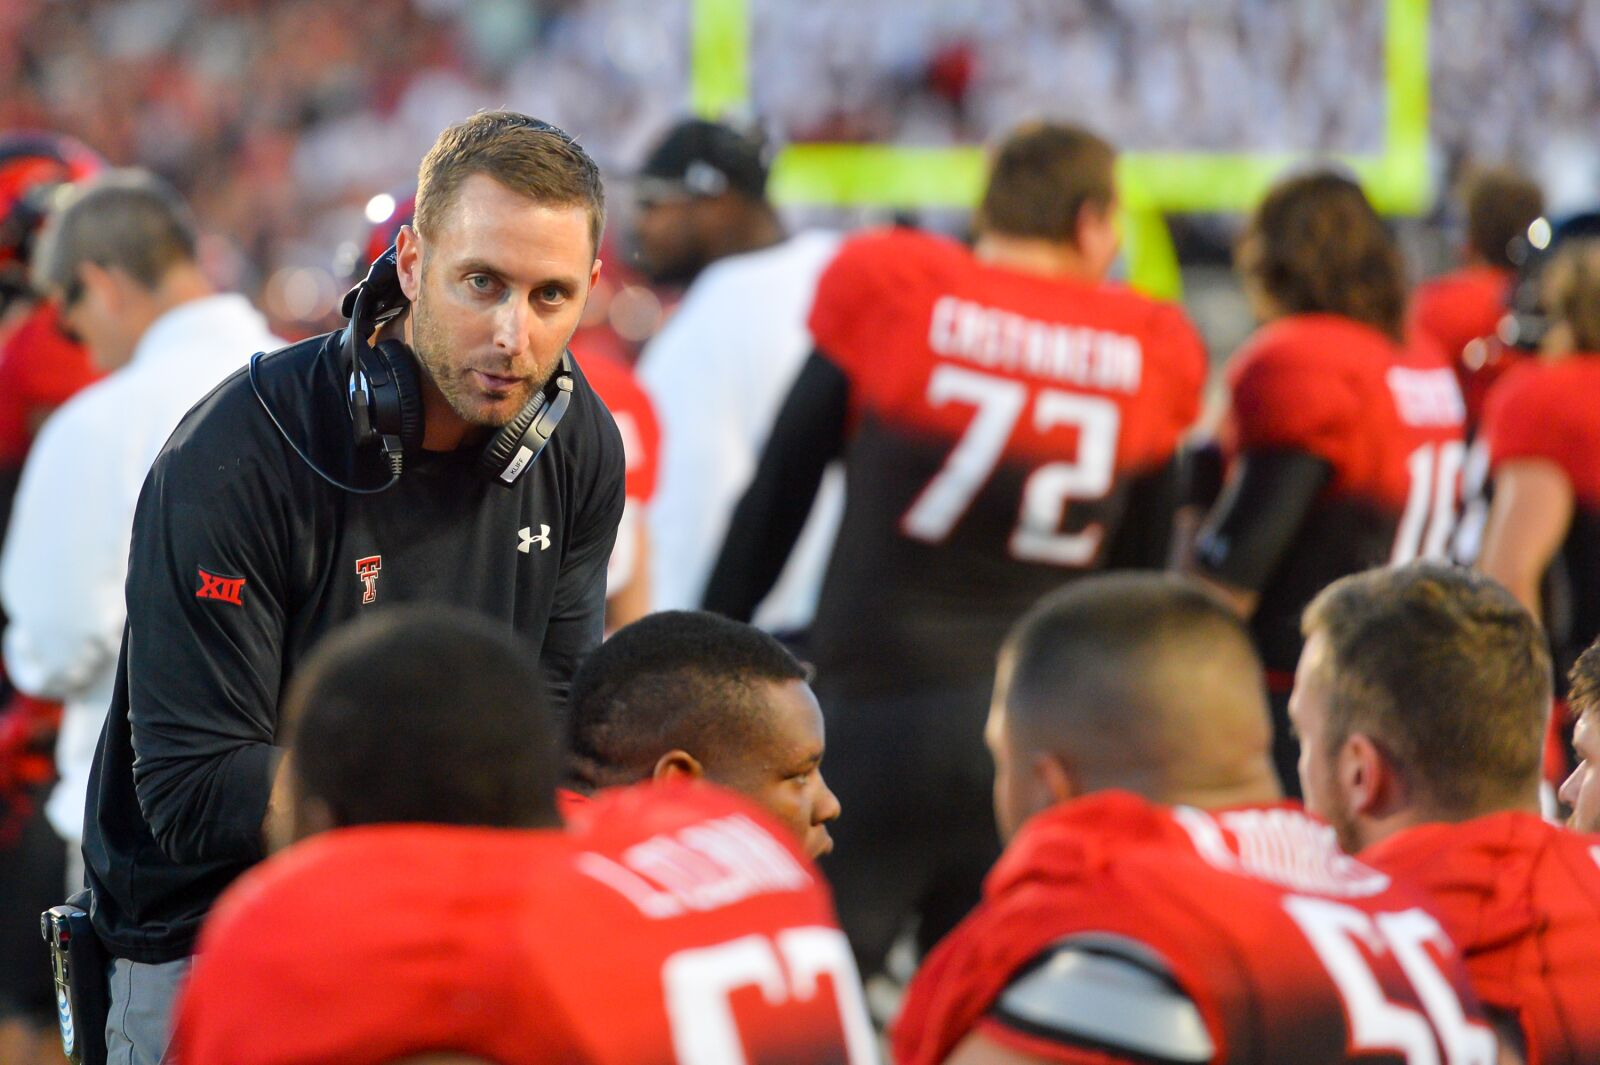 Kliff Kingsbury is setting a culture change for the Arizona Cardinals